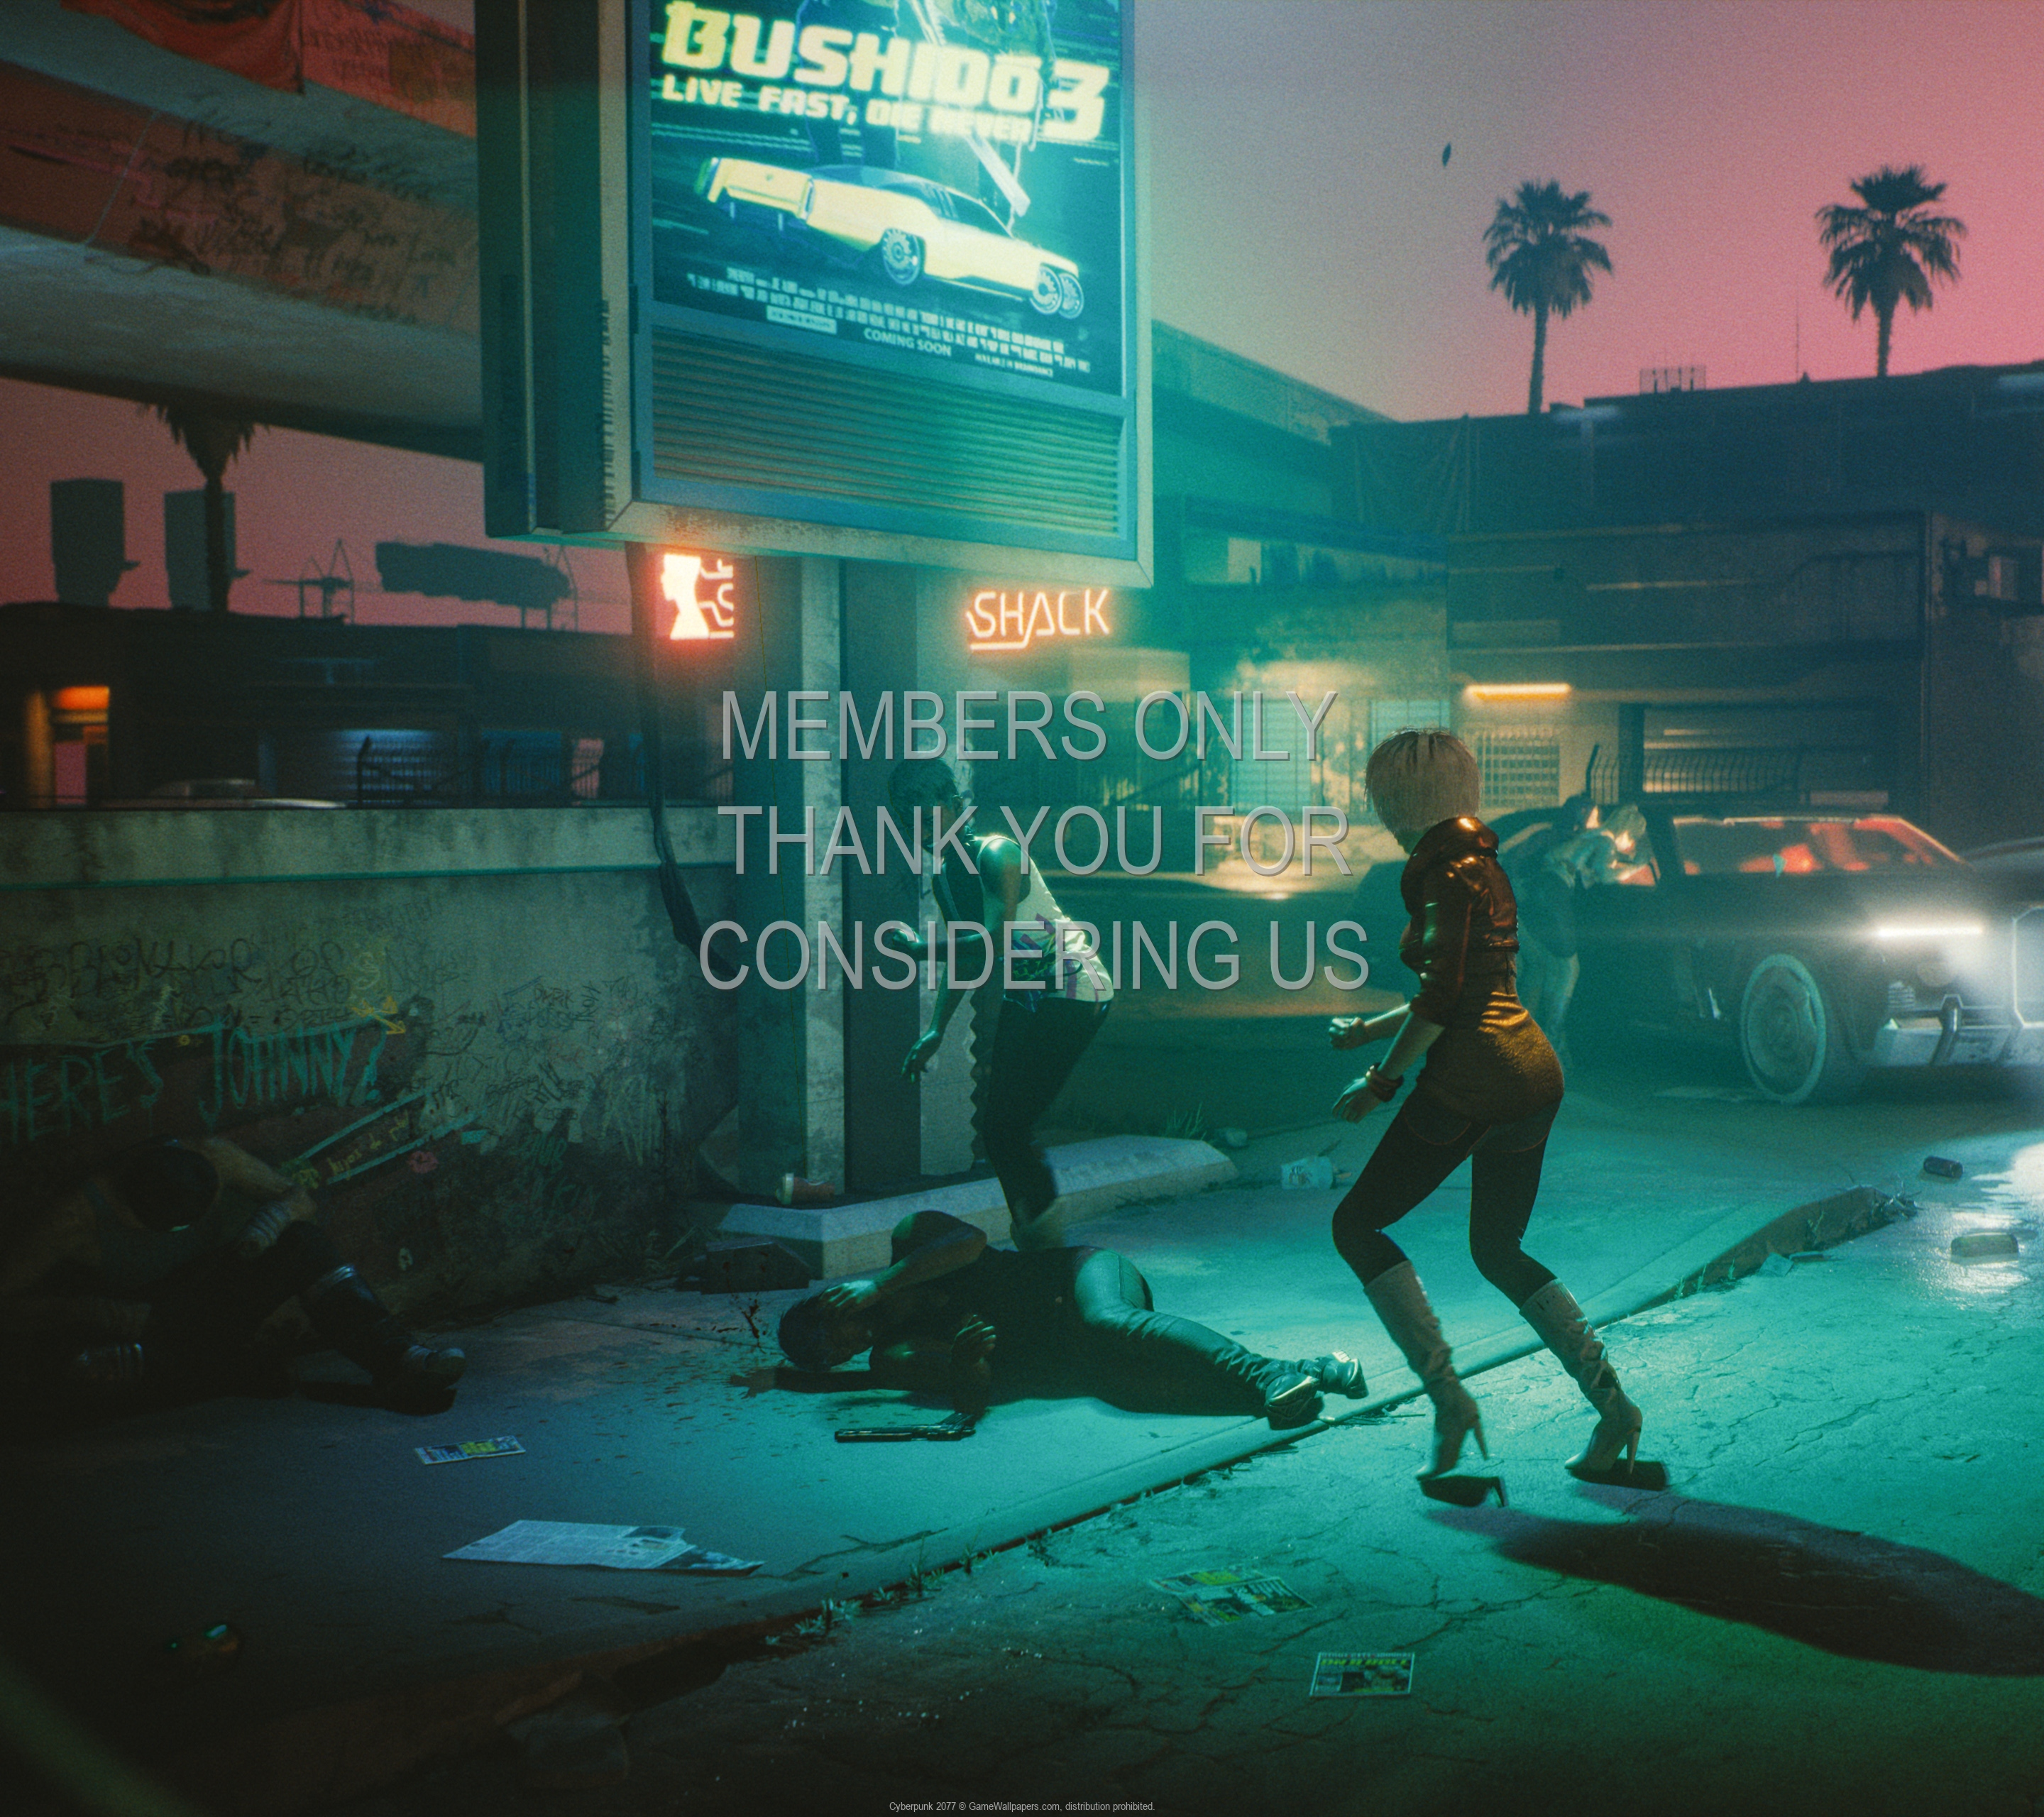 Cyberpunk 2077 1920x1080 Mobile wallpaper or background 14